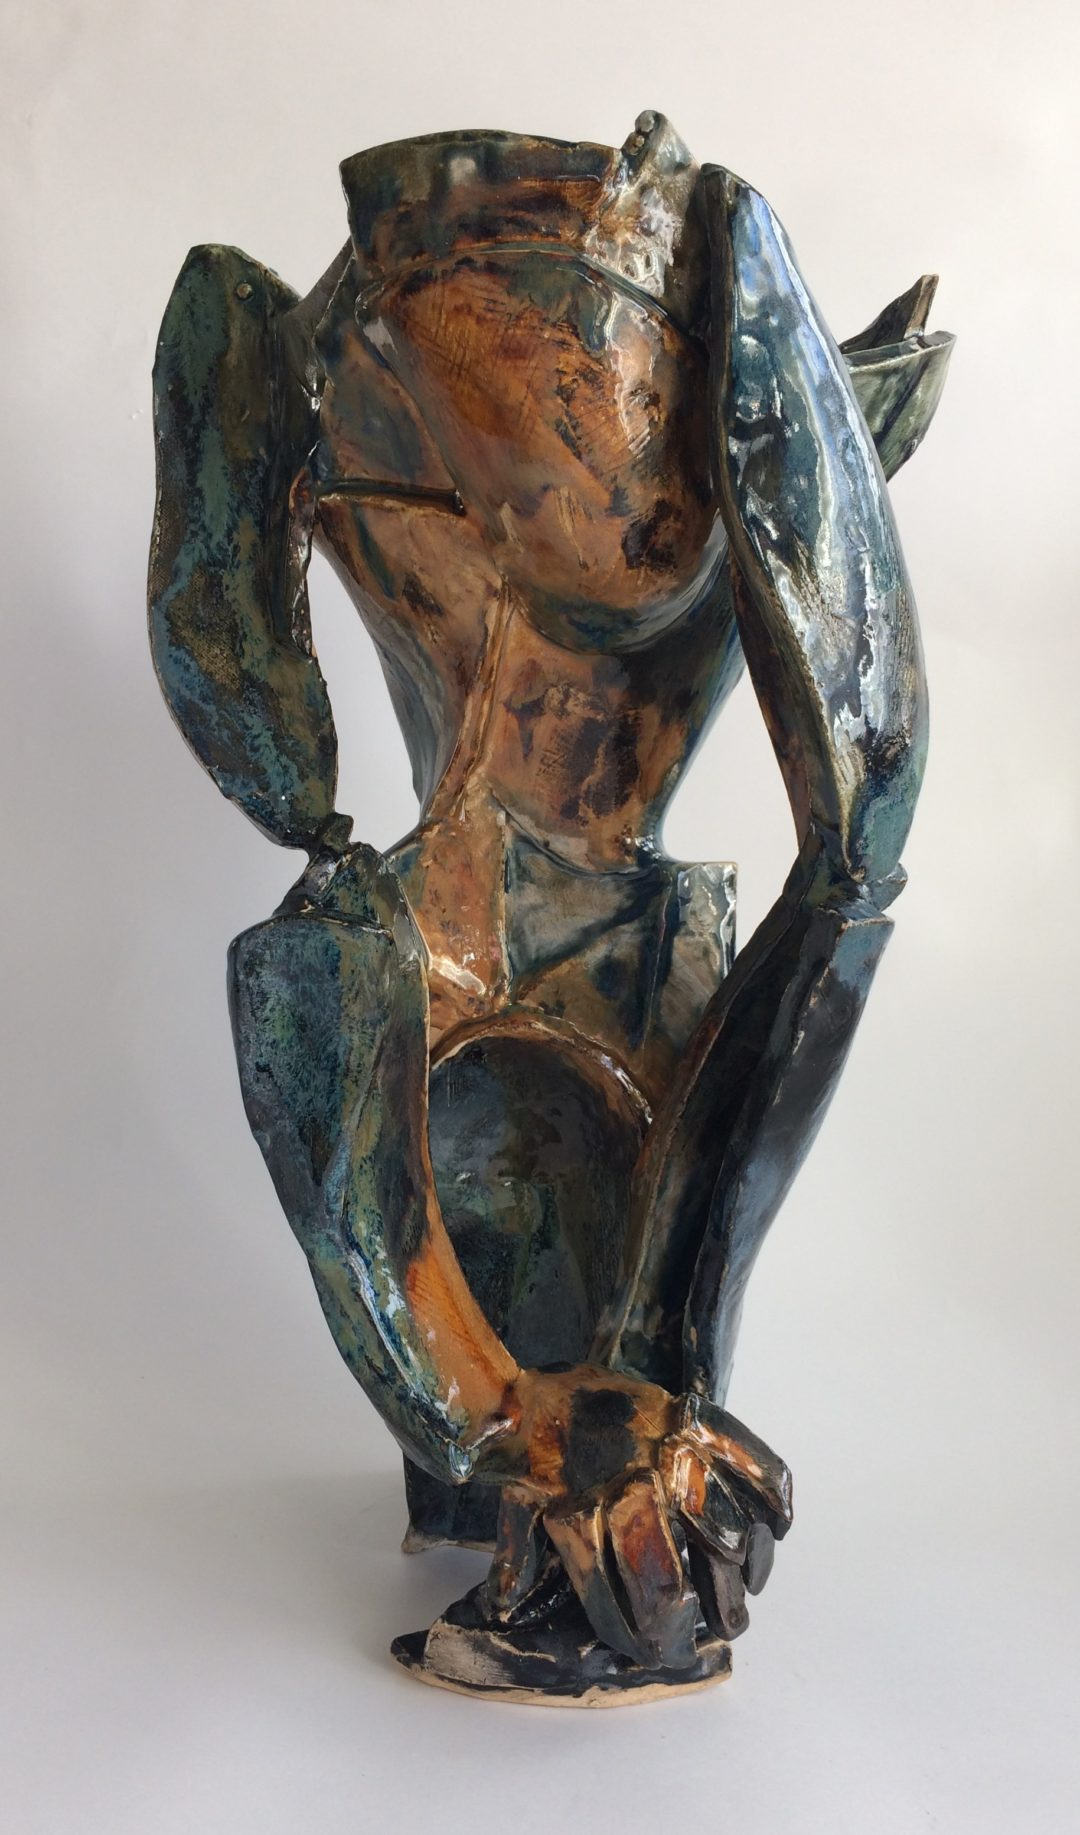 Philomena's ceramic take on a painting by Picasso